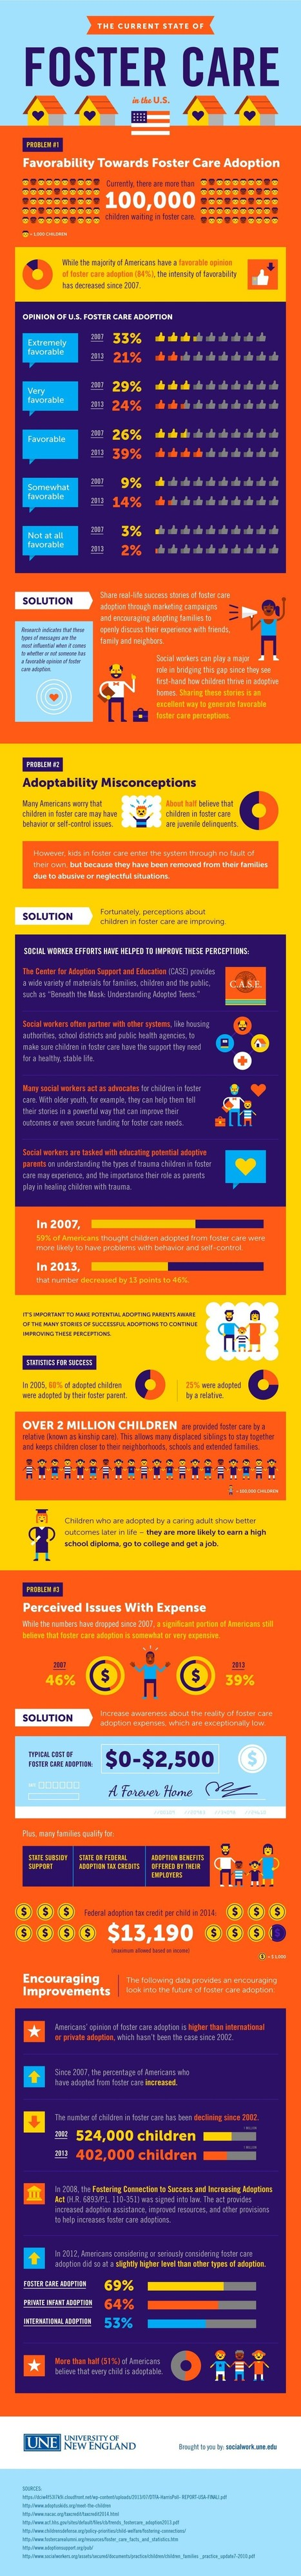 10 Problems and Solutions for improving Foster Care Adoption | All Infographics | Scoop.it